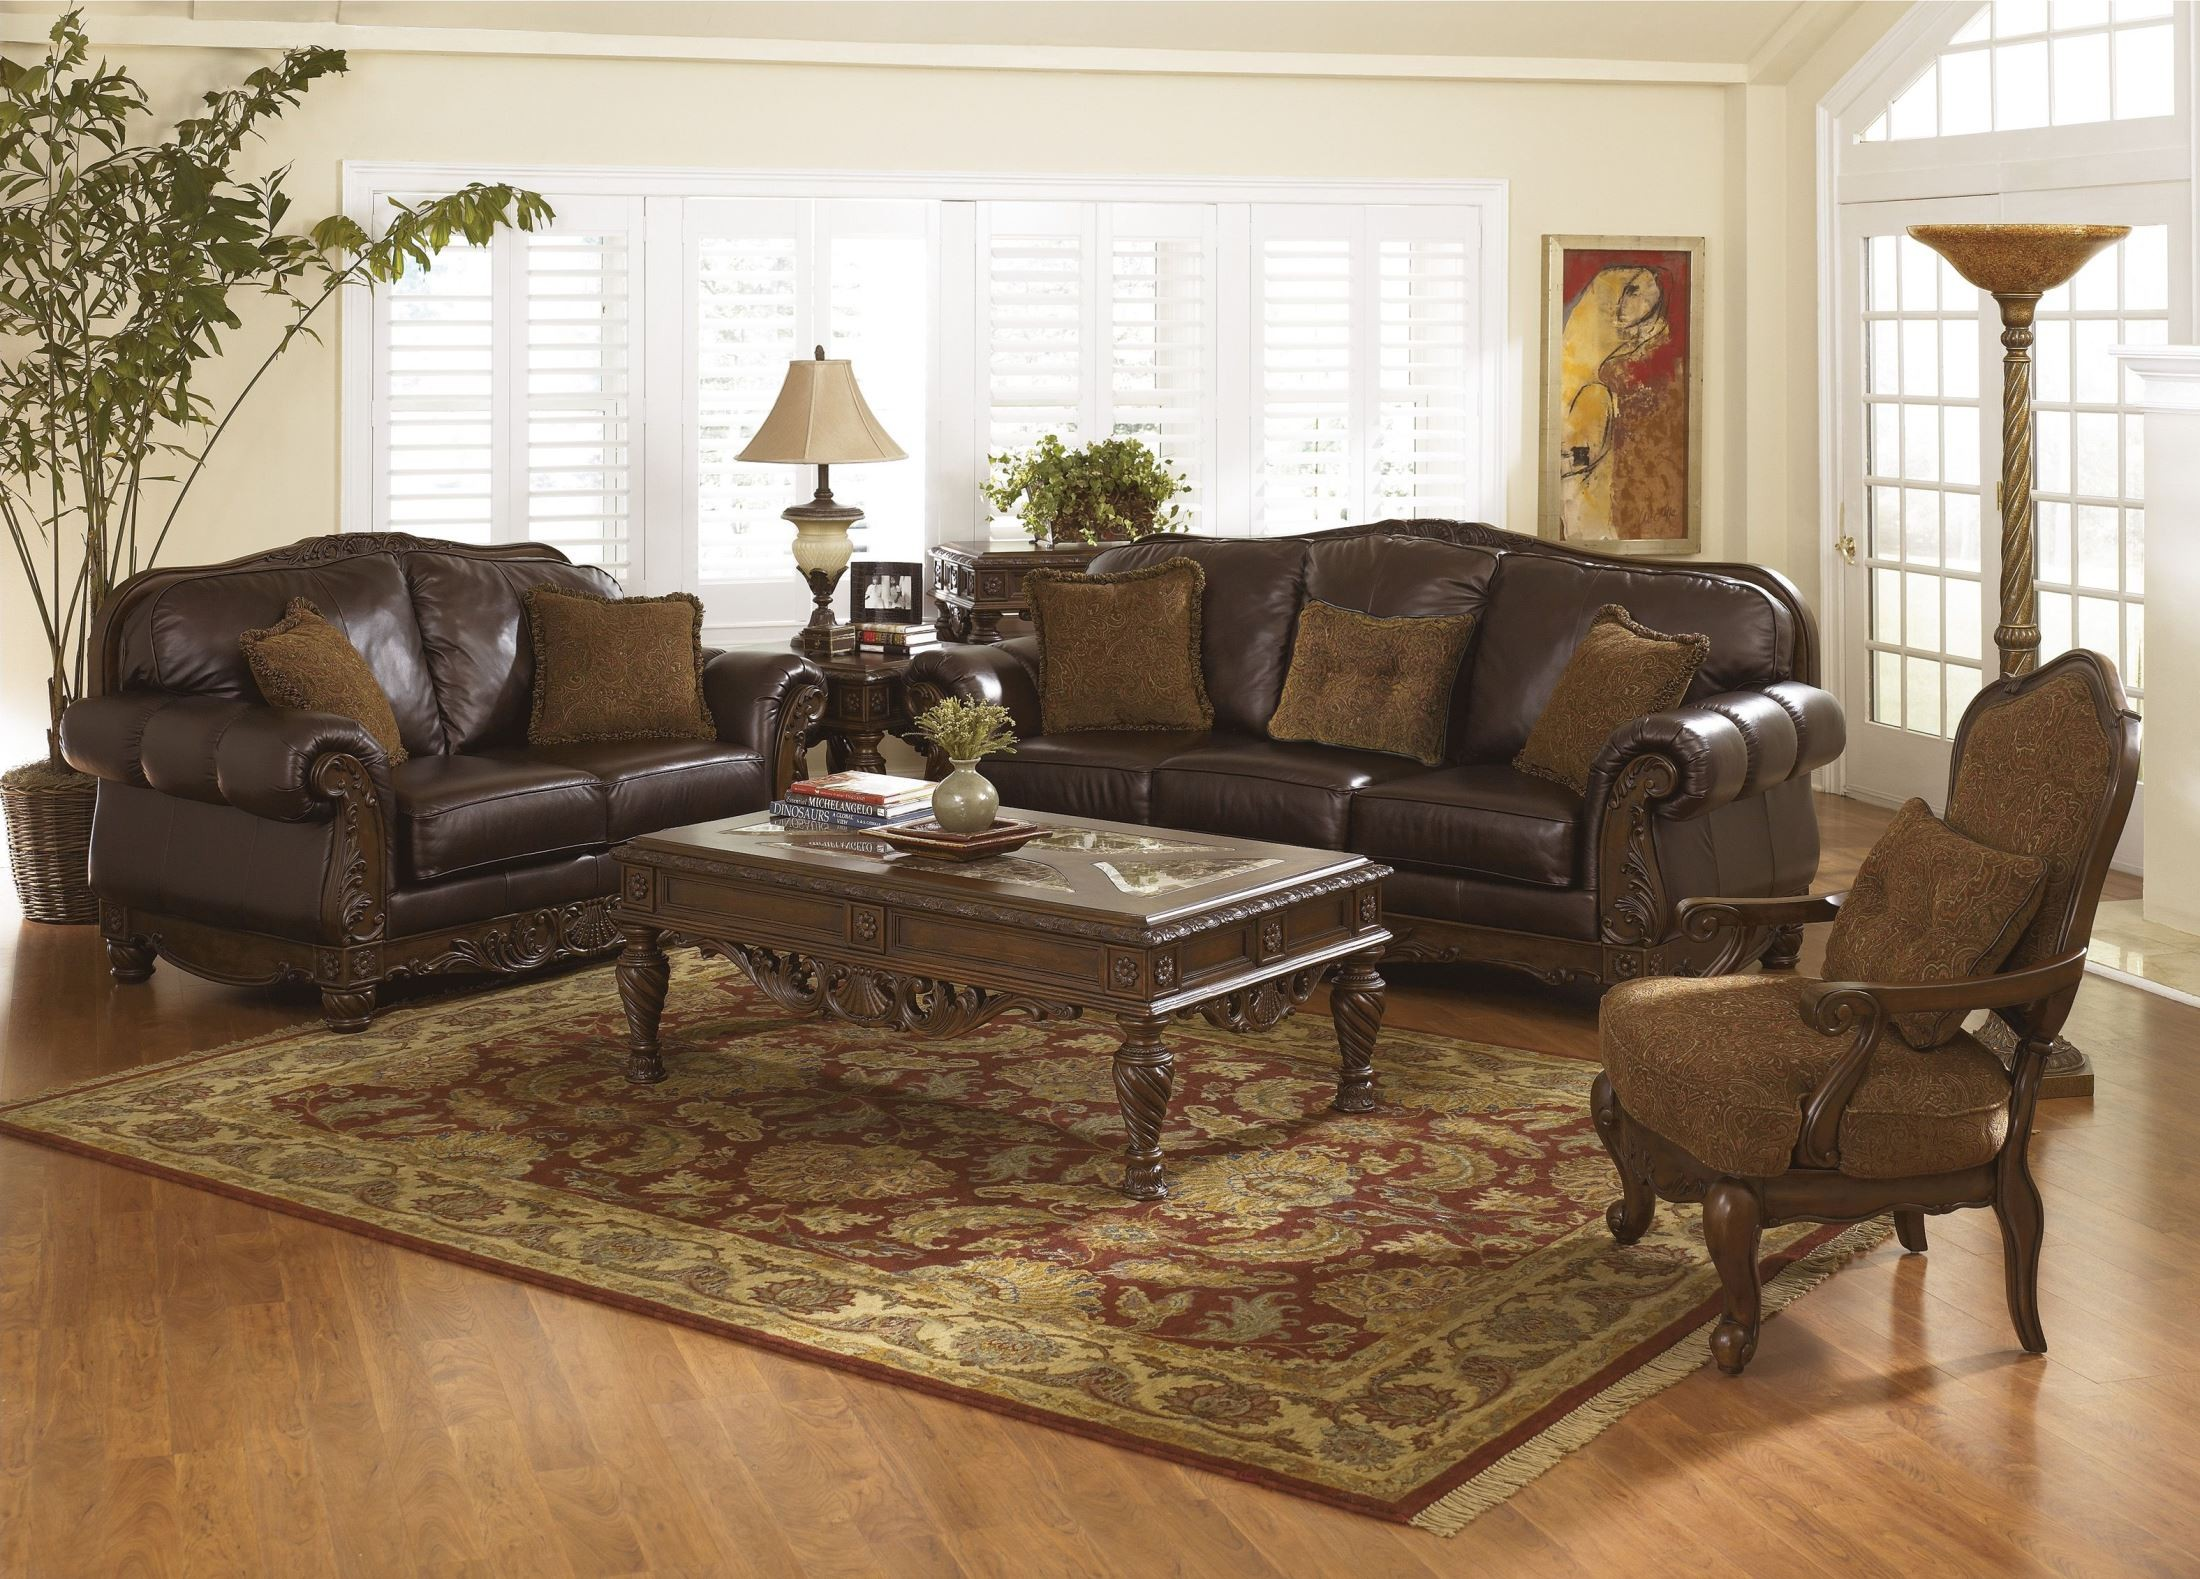 North shore dark brown loveseat from ashley 2260335 for Ashley furniture north shore chaise